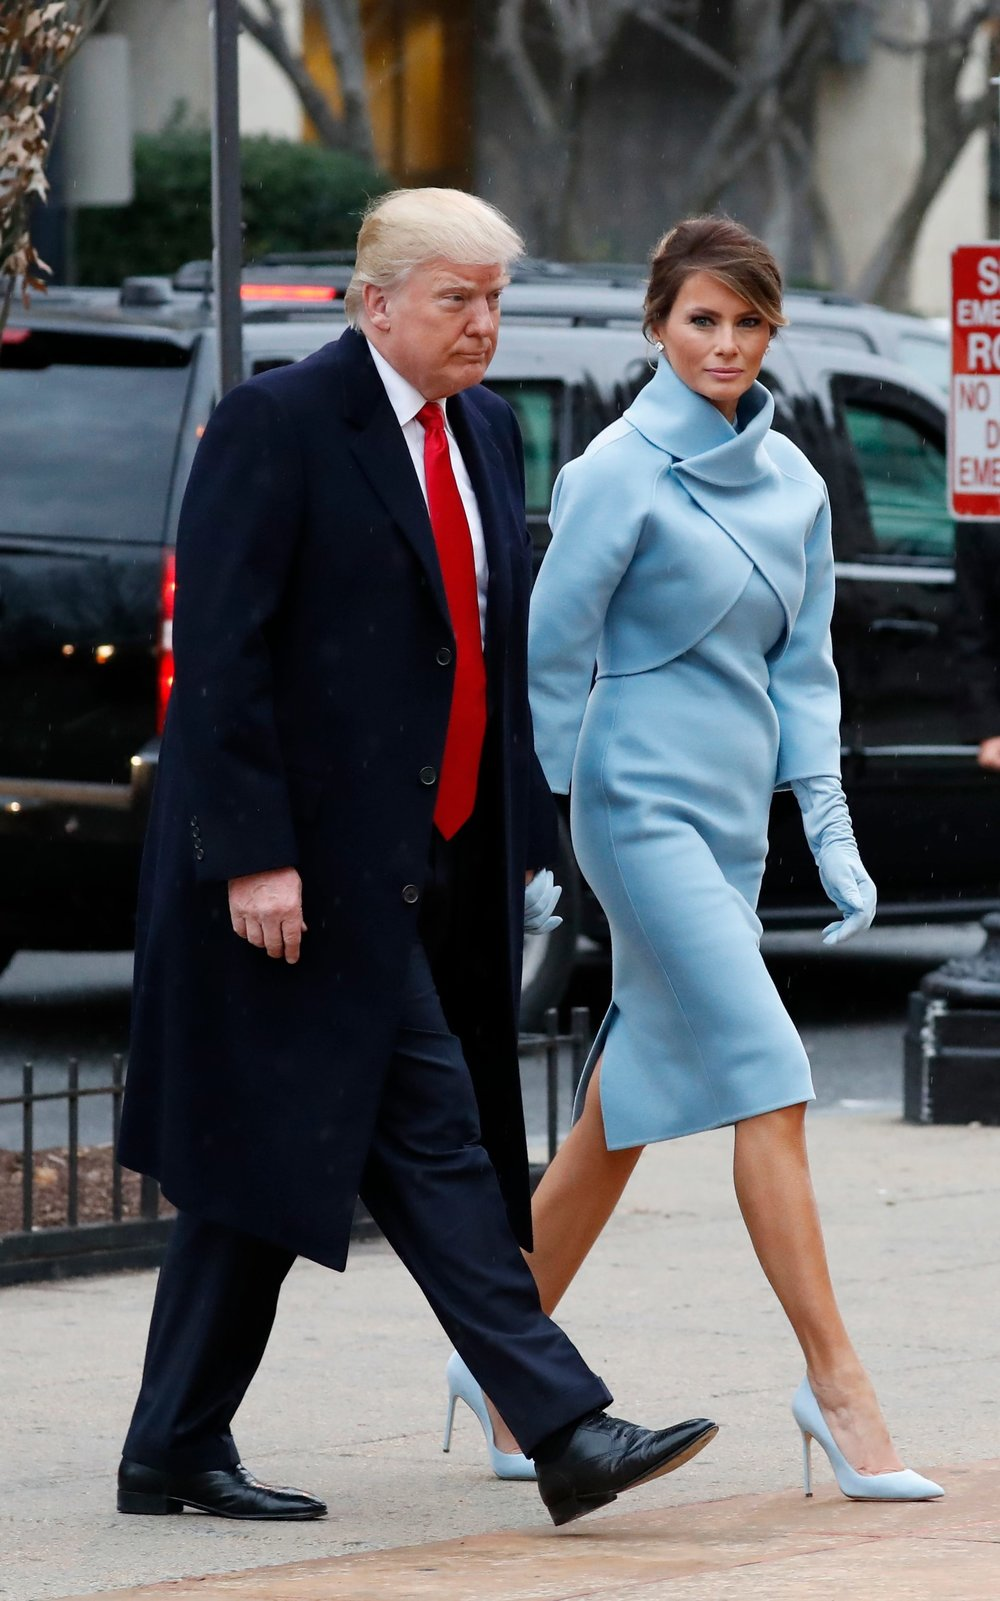 Melania Trump is a Slovene-born American former fashion model and the First Lady of the United States, the wife of the 45th U.S. president Donald Trump. Trump is involved with a number of charities, including the Martha Graham Dance Company, the Boys Club of New York, the American Red Cross, Make A Wish Foundation, and the Police Athletic League.